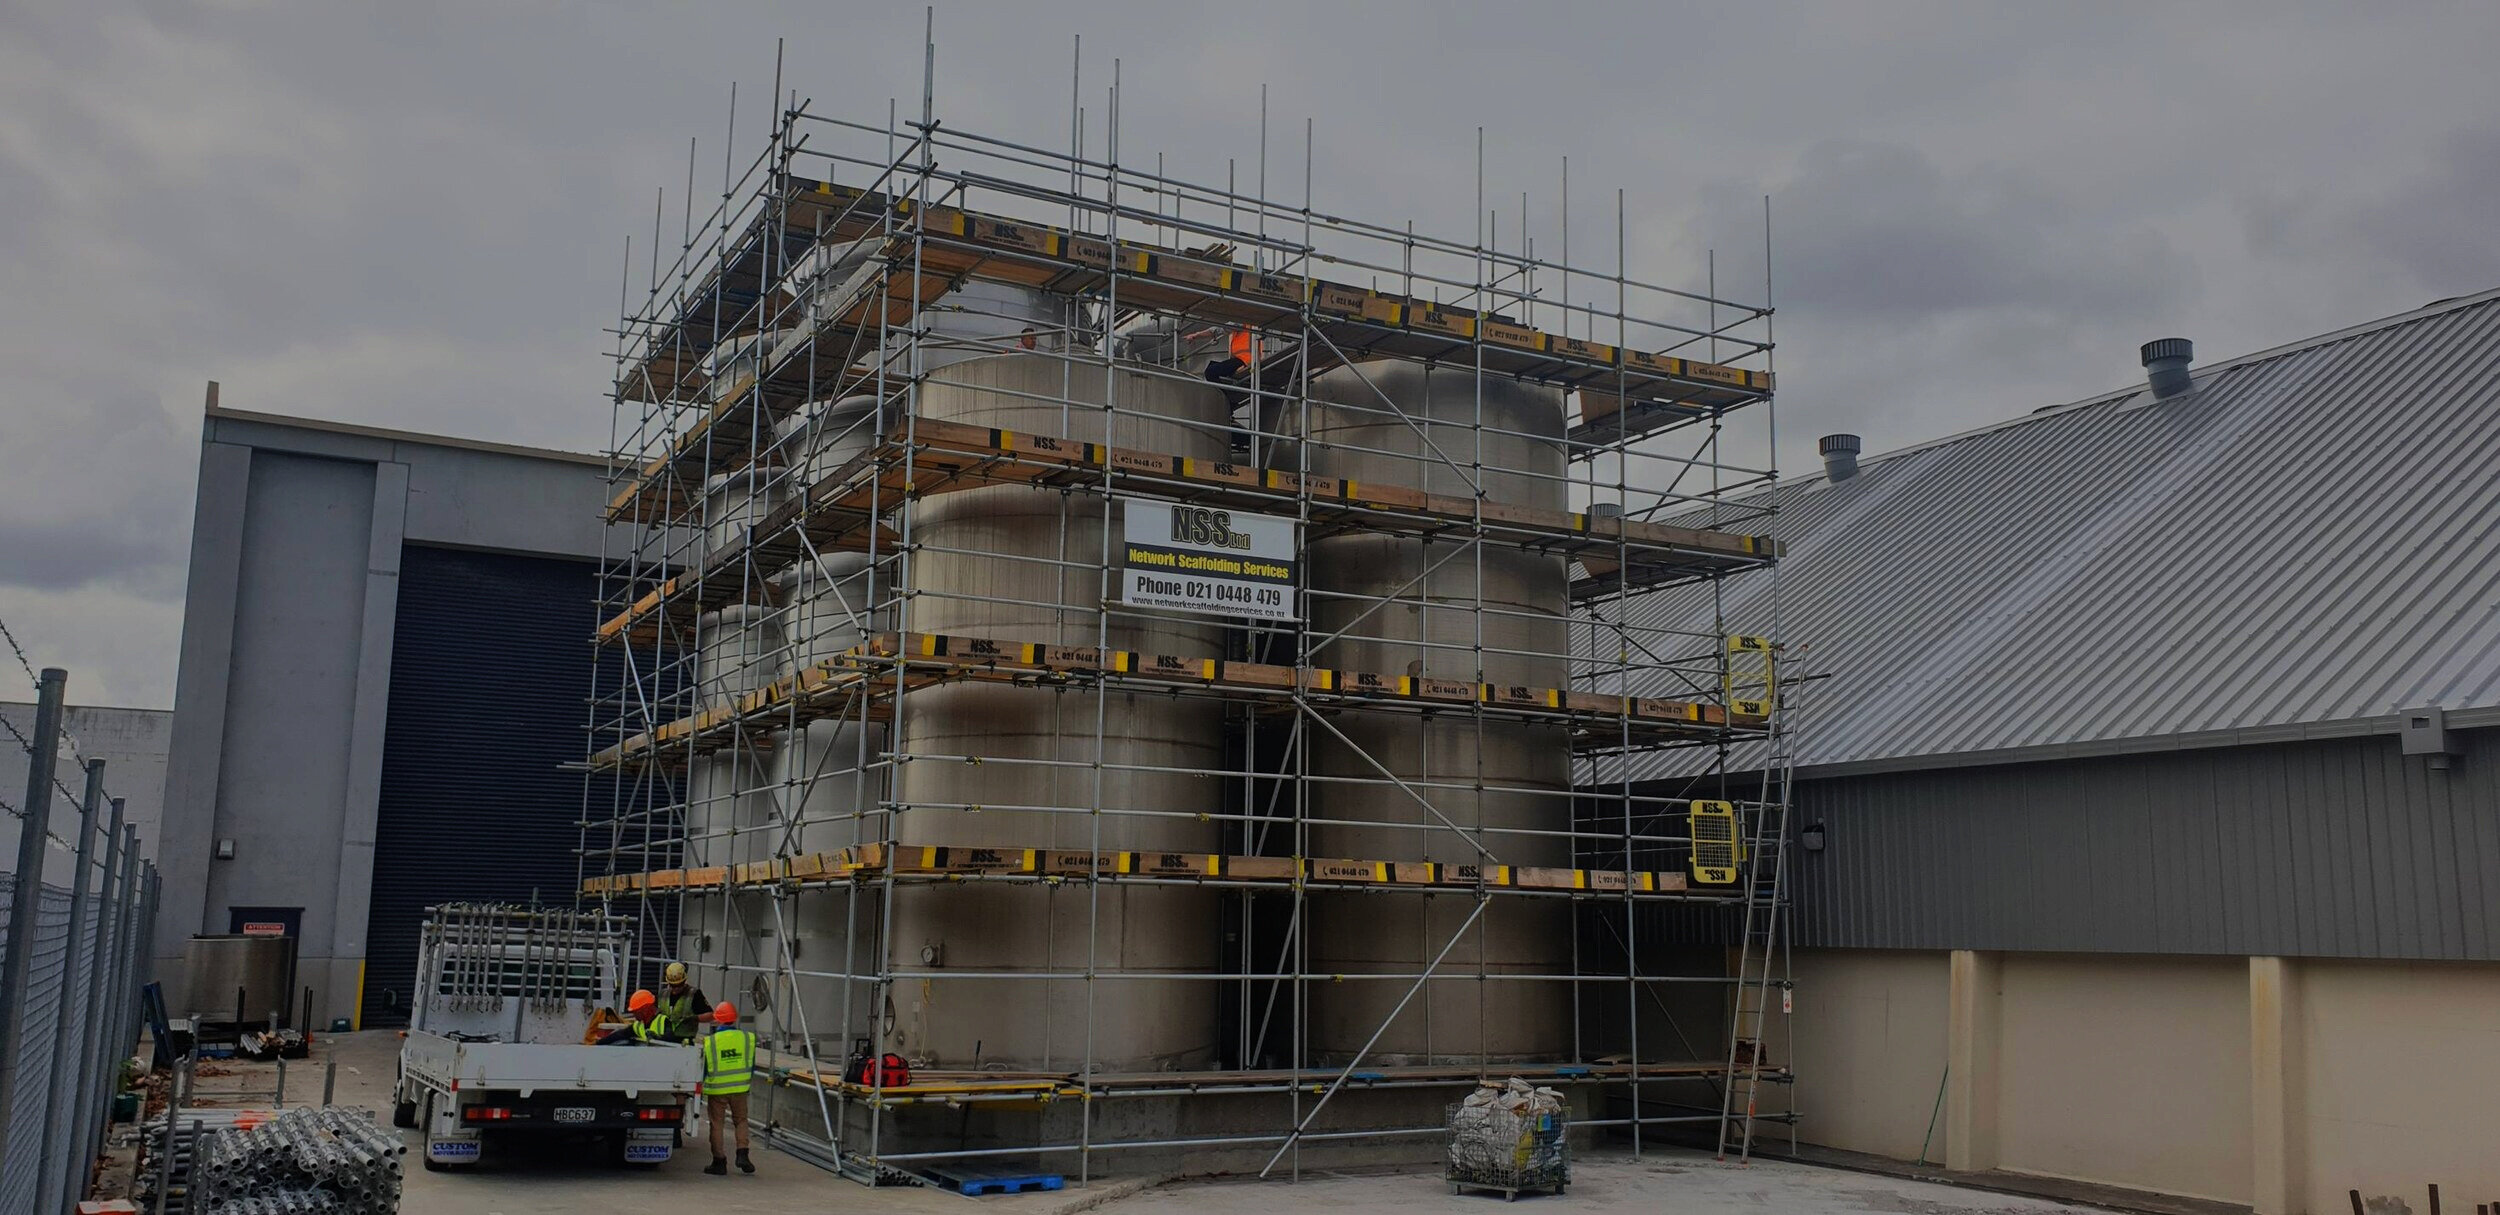 A Relationship Built On Trust - We'll do everything we can to ensure we help you achieve your aims in a time and cost efficient manner. A focus on health & safety as well as a genuine desire to understand your goals means all our scaffolds are unique to the site and project they're built for.